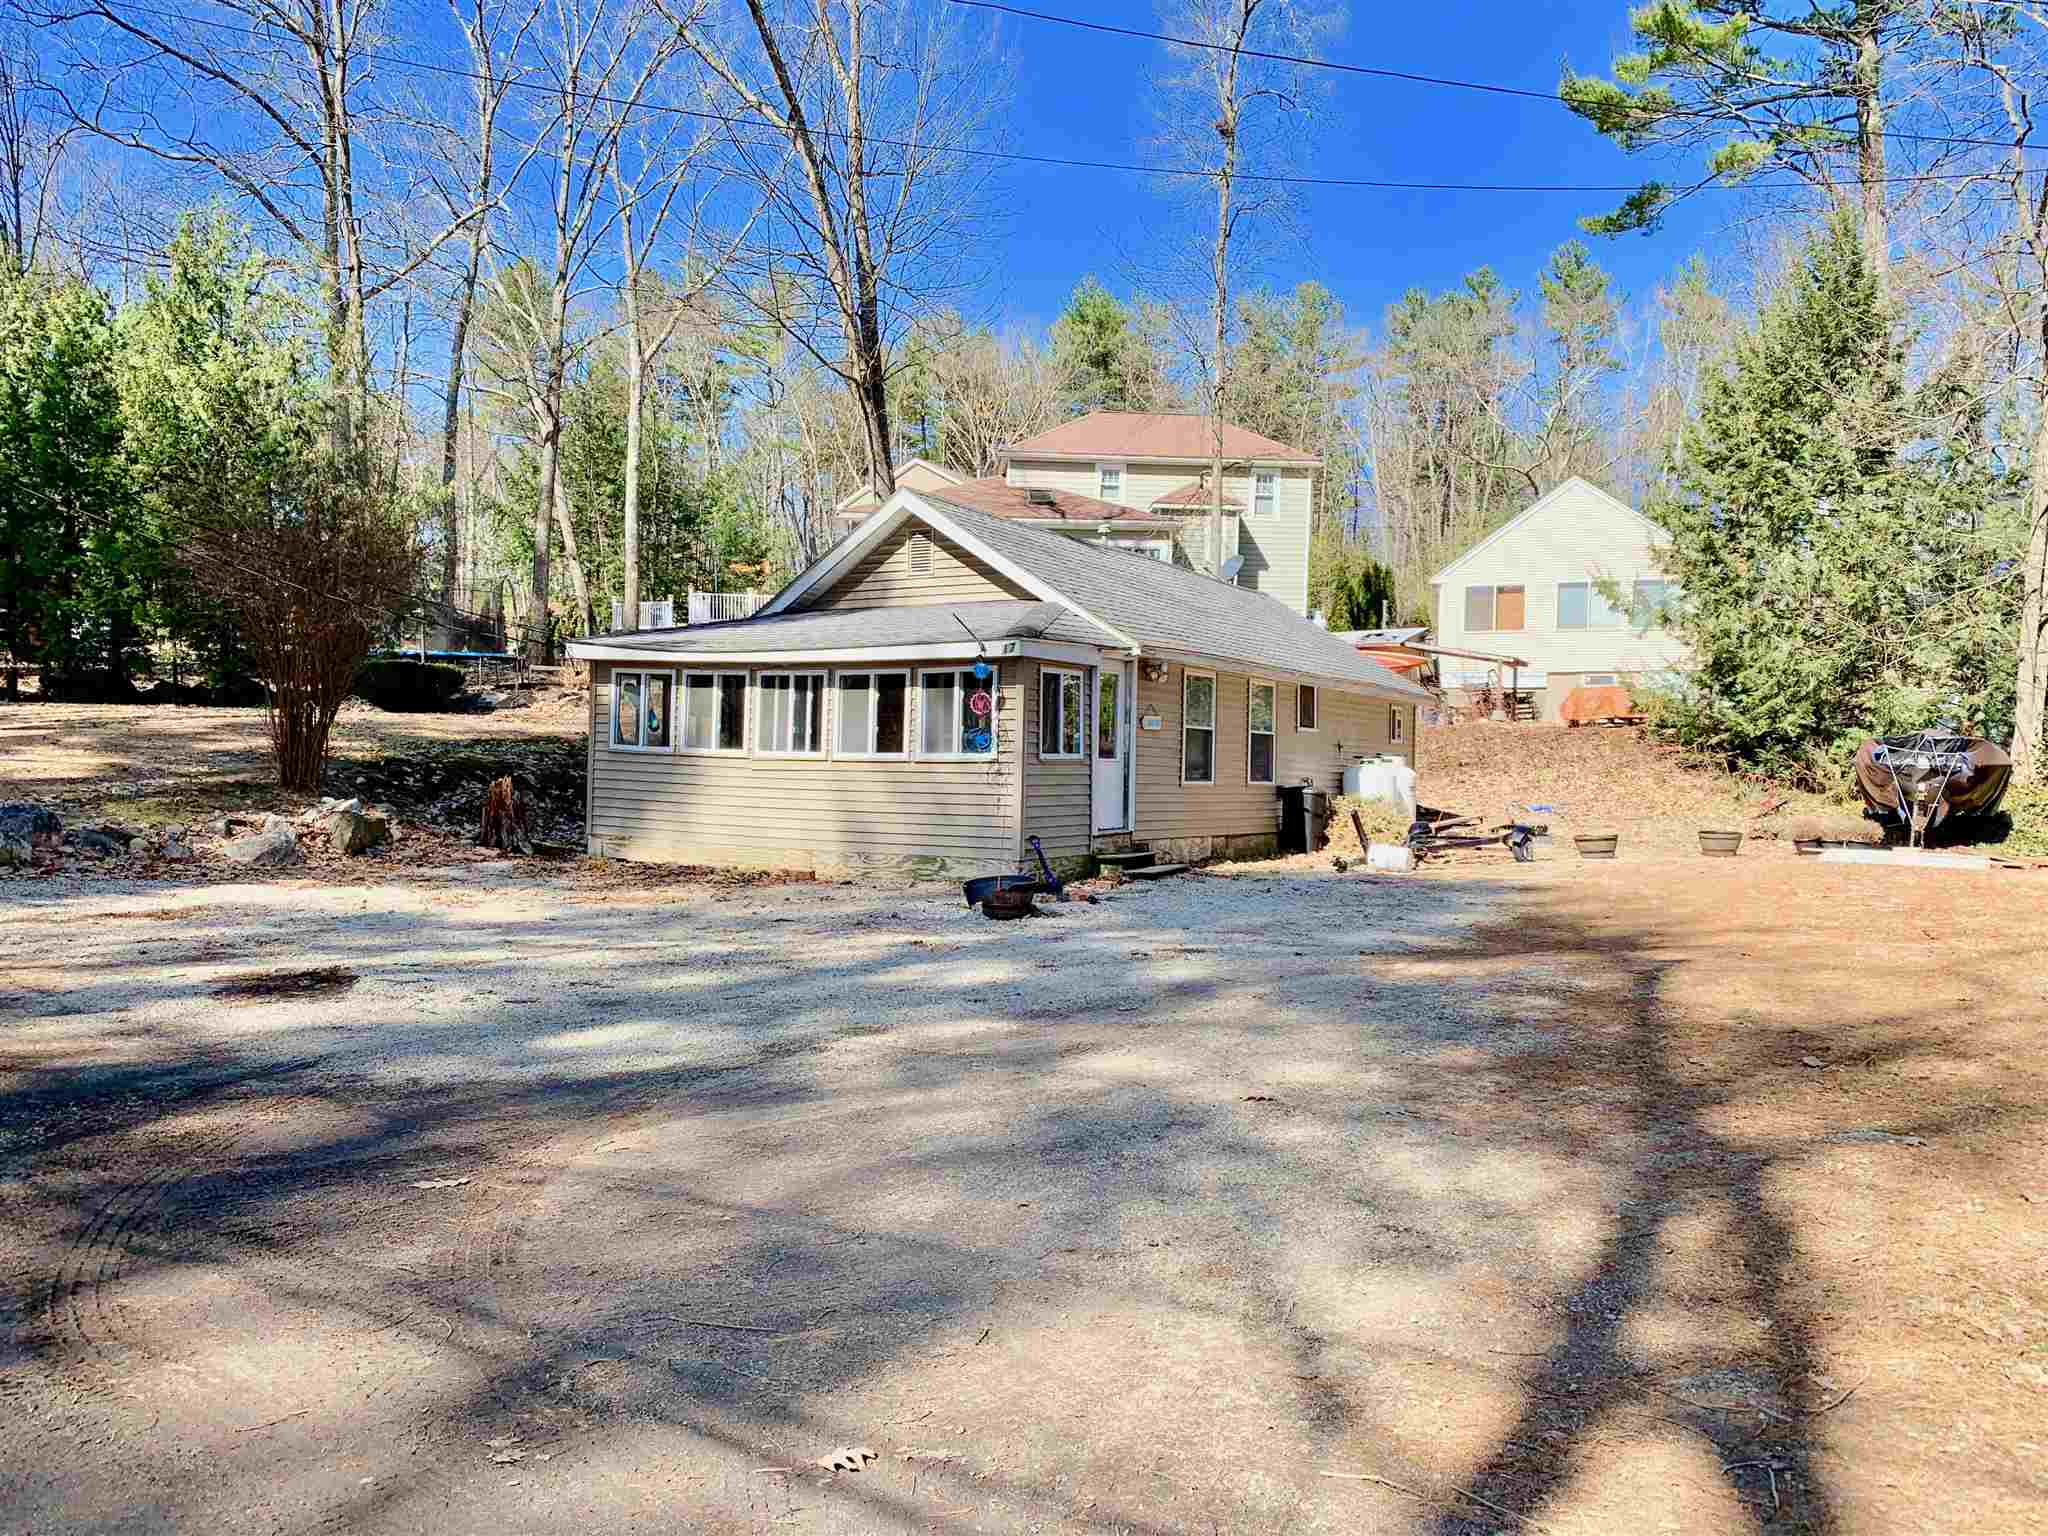 MLS 4798947: 17 2nd Street, Windham NH